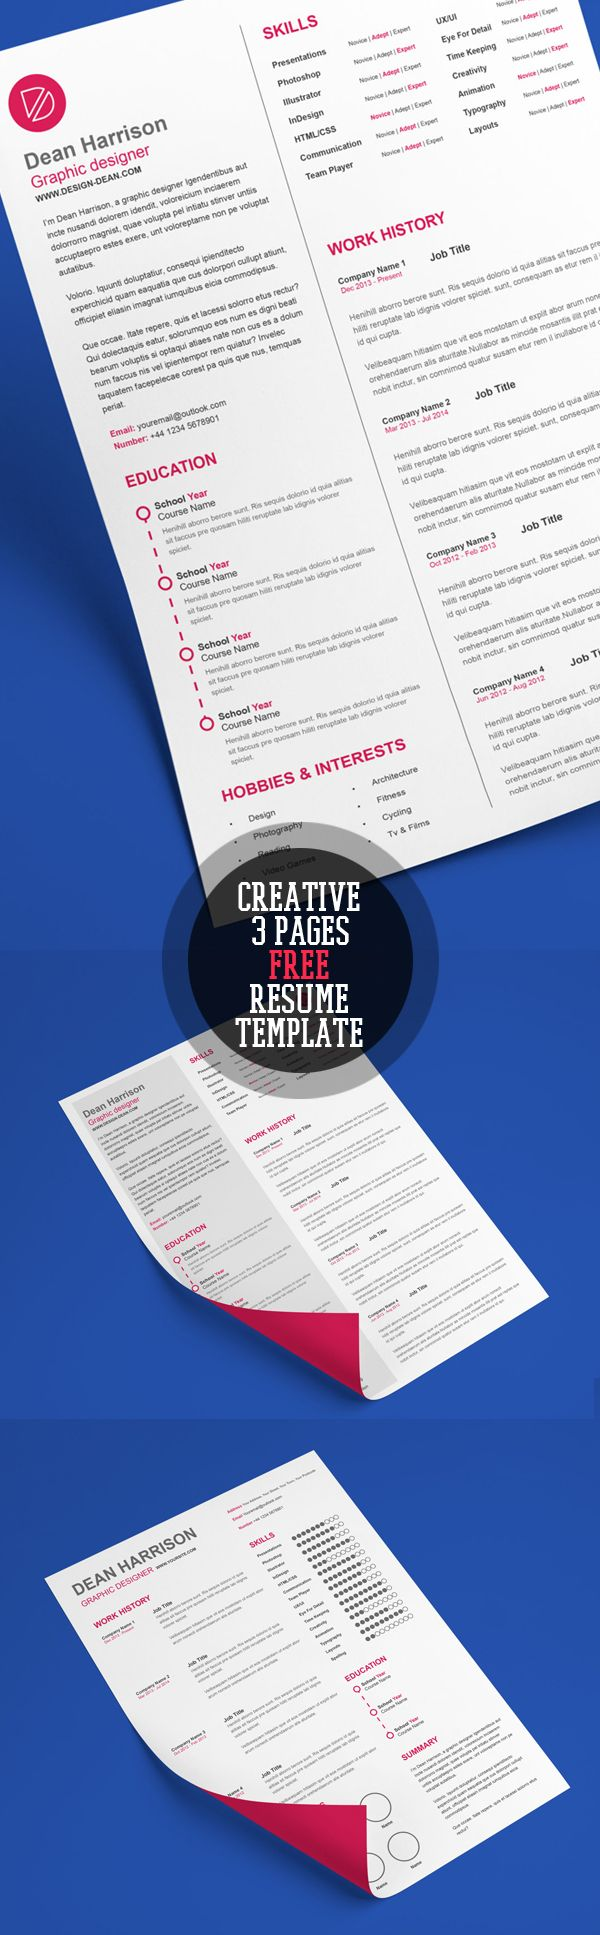 Free Resume Templates for 2017 100 best